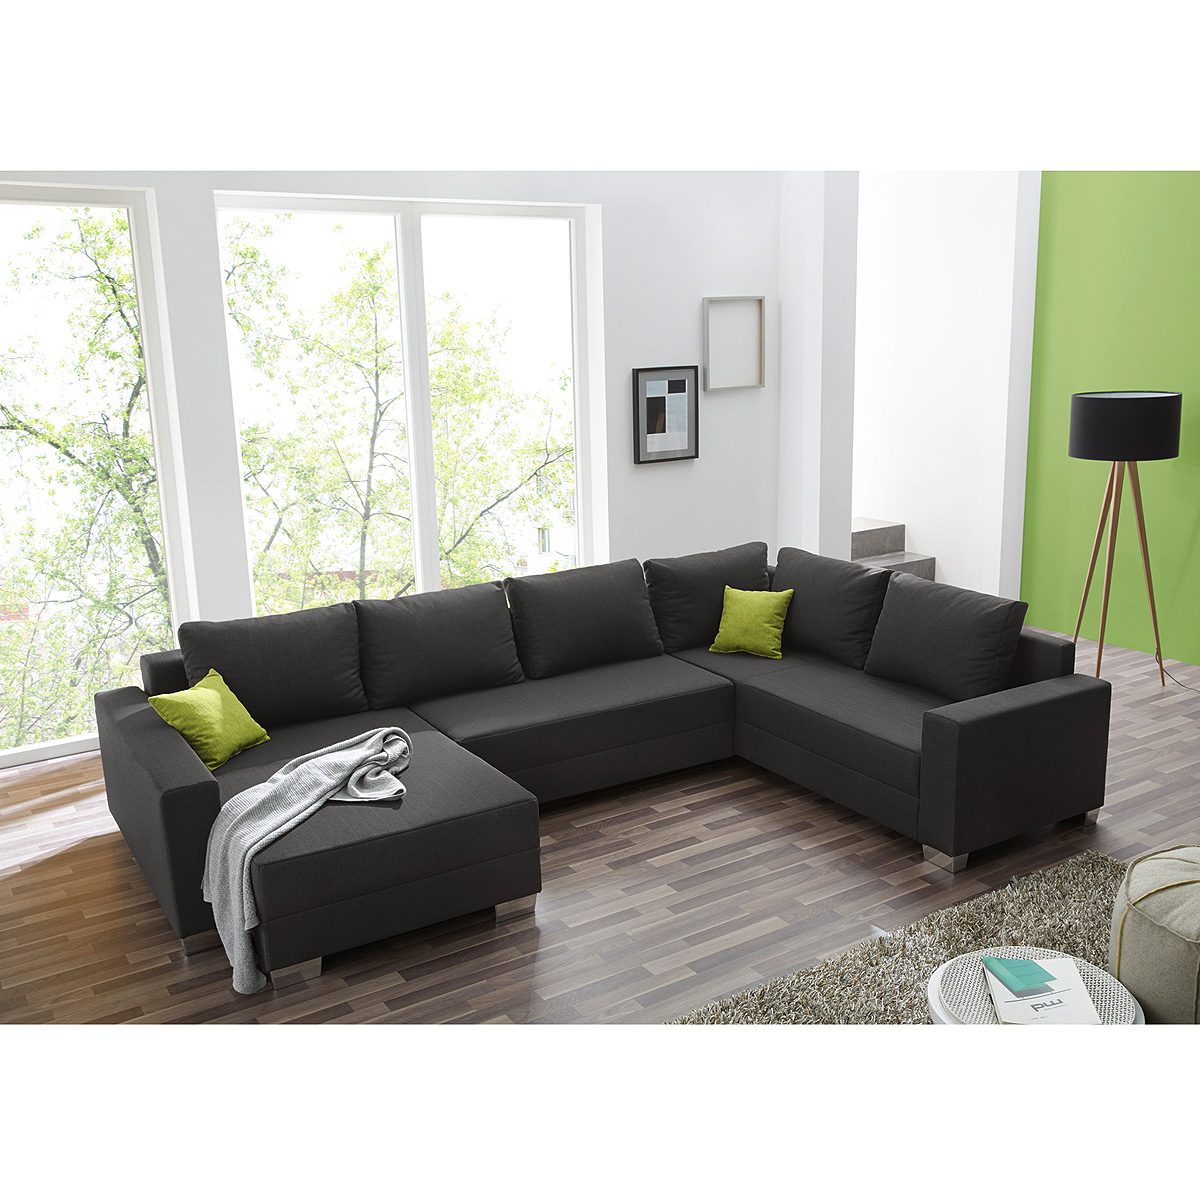 wohnlandschaft abby sofa ecksofa in schwarz wei grau. Black Bedroom Furniture Sets. Home Design Ideas